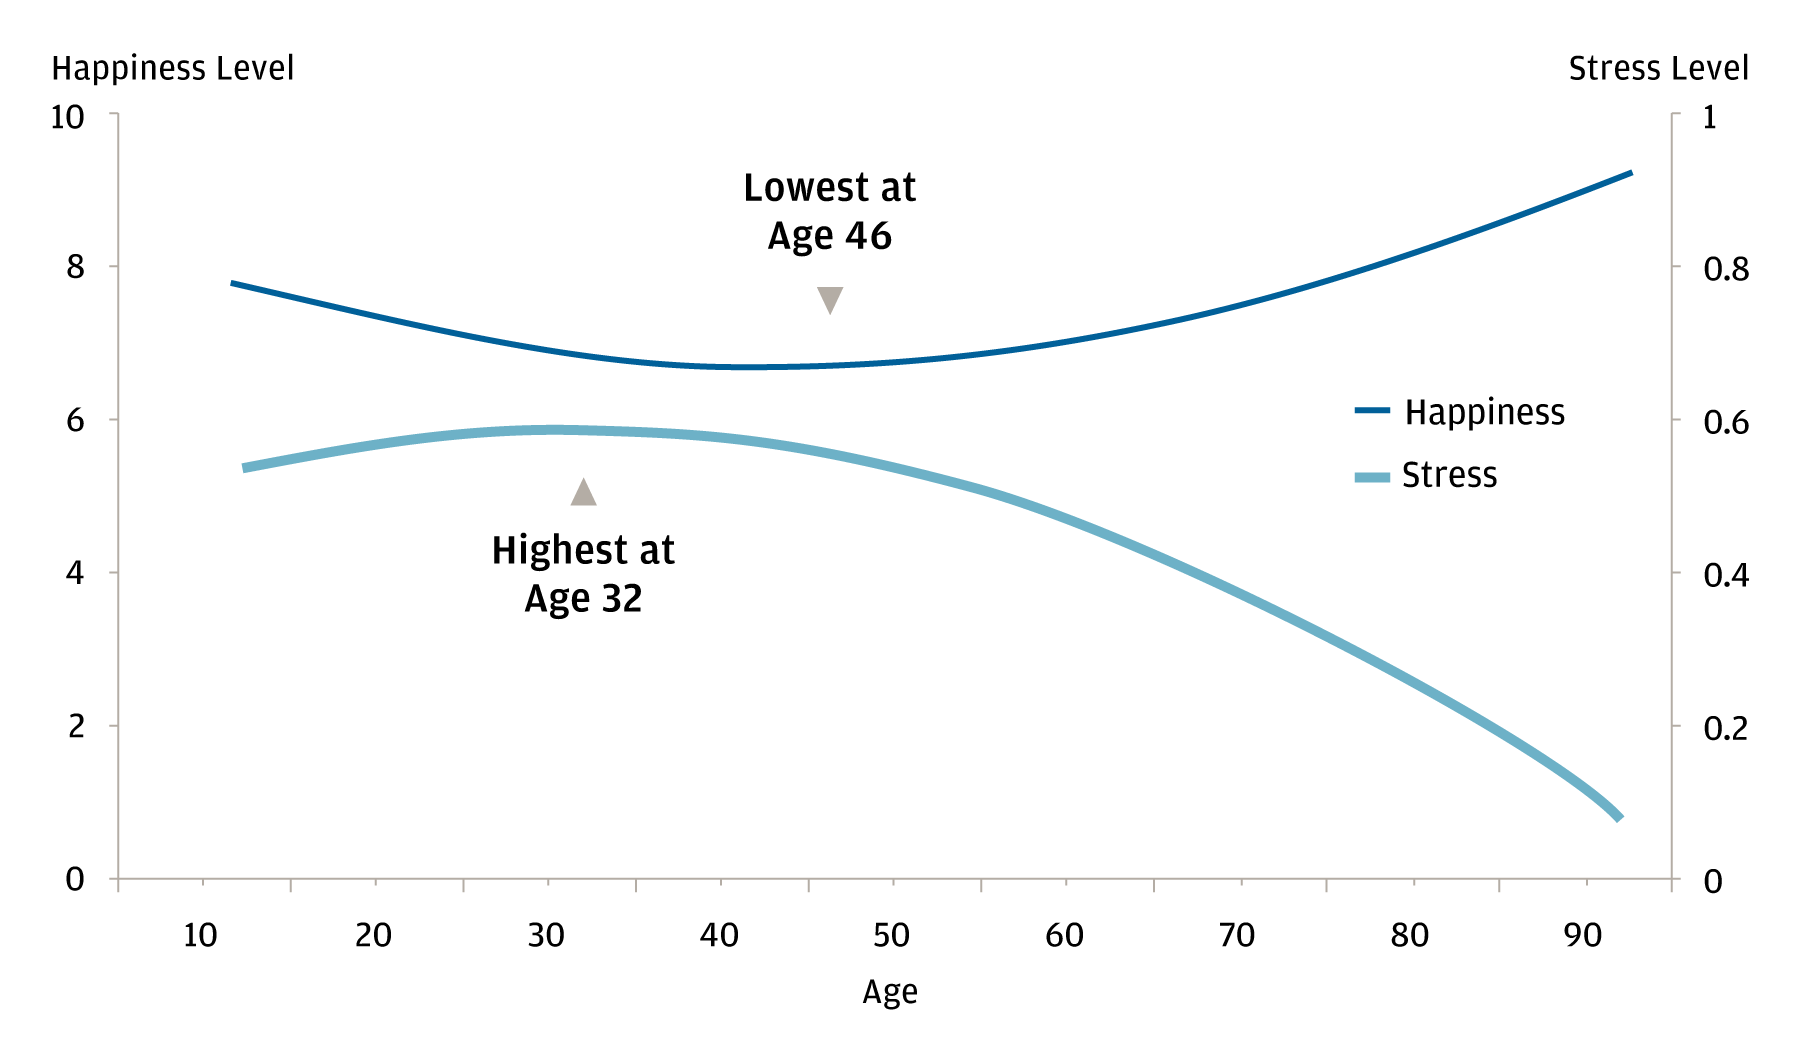 The line chart shows two lines: one for the level of stress and one for the level of happiness in a person's lifetime by age. It shows that happiness goes up and stress goes down after a middle-aged inflection point.